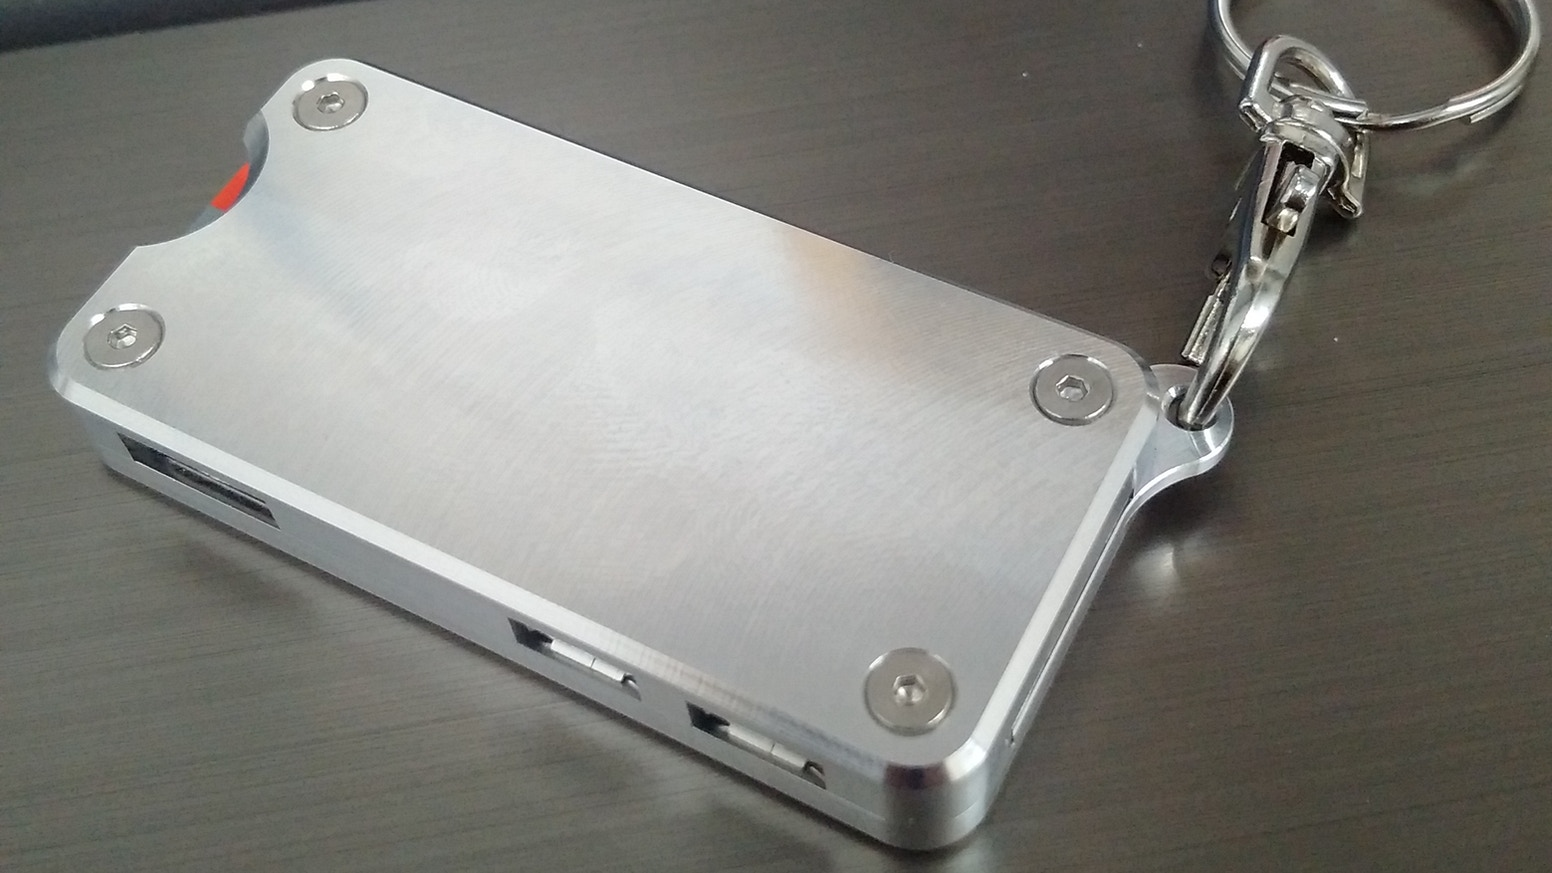 Aluminium case for the Raspberry Pi Zero that you can take around with you on a Keychain